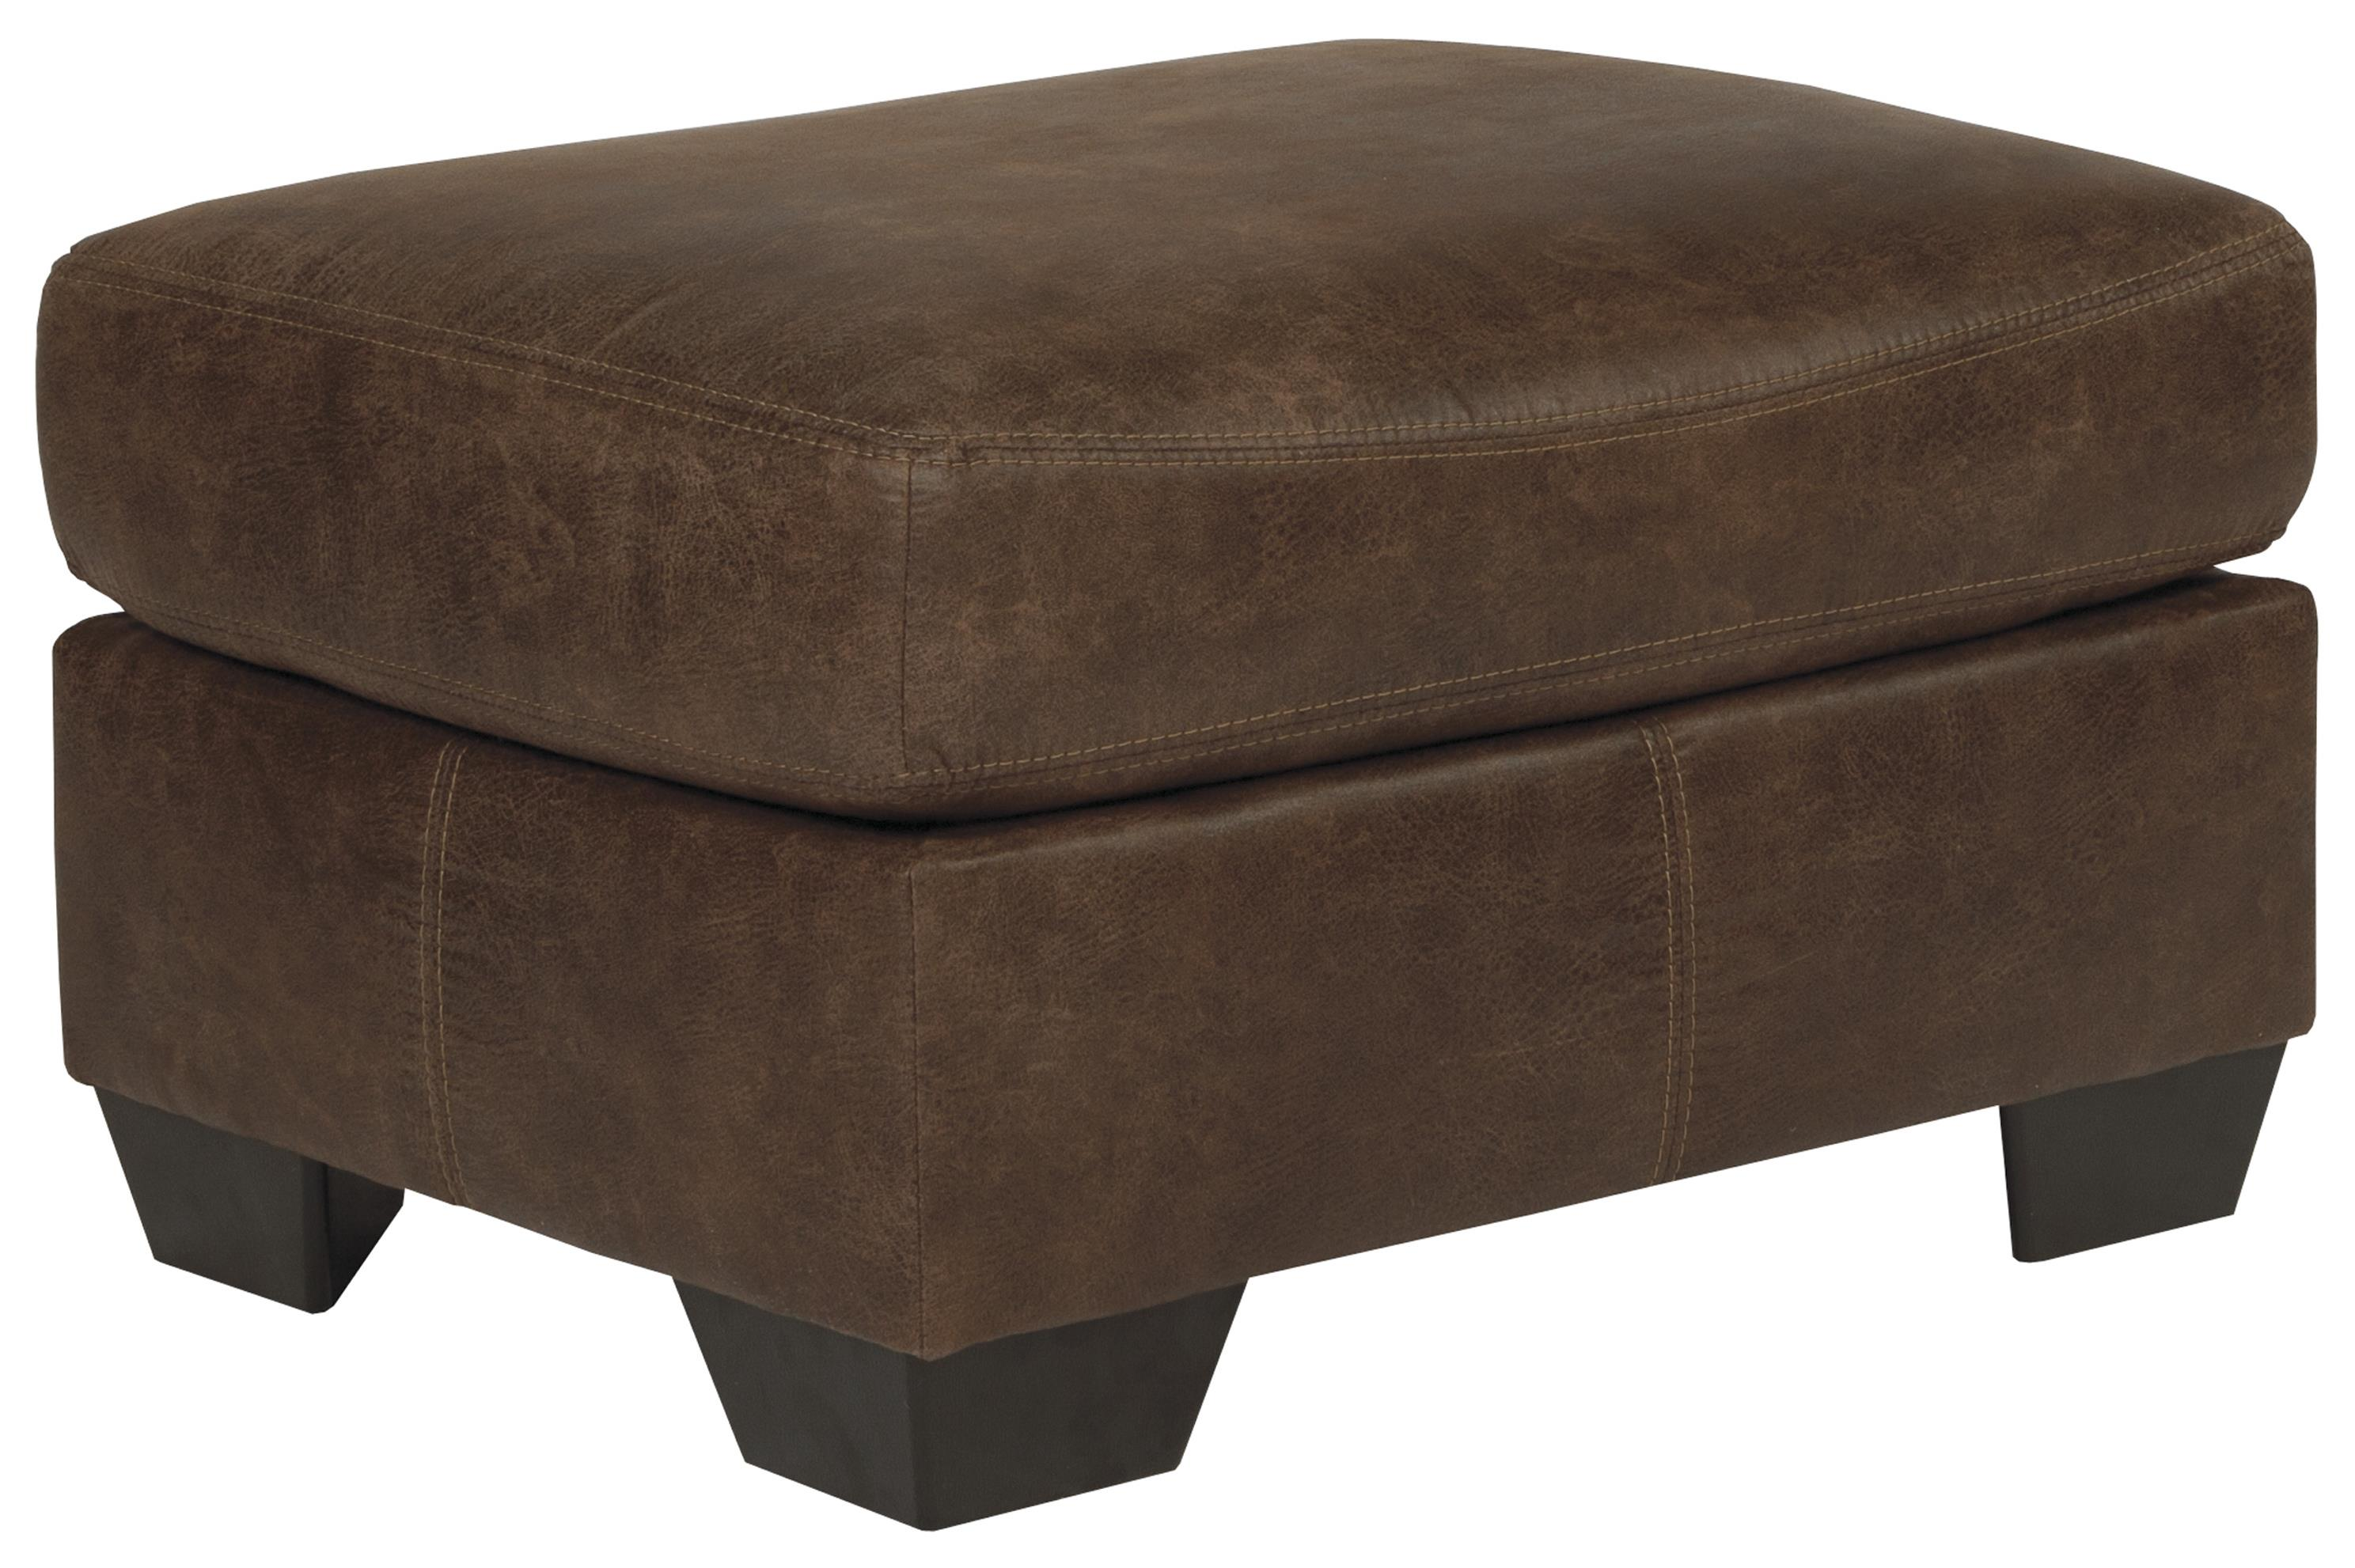 Signature Design by Ashley Bladen Ottoman - Item Number: 1200014